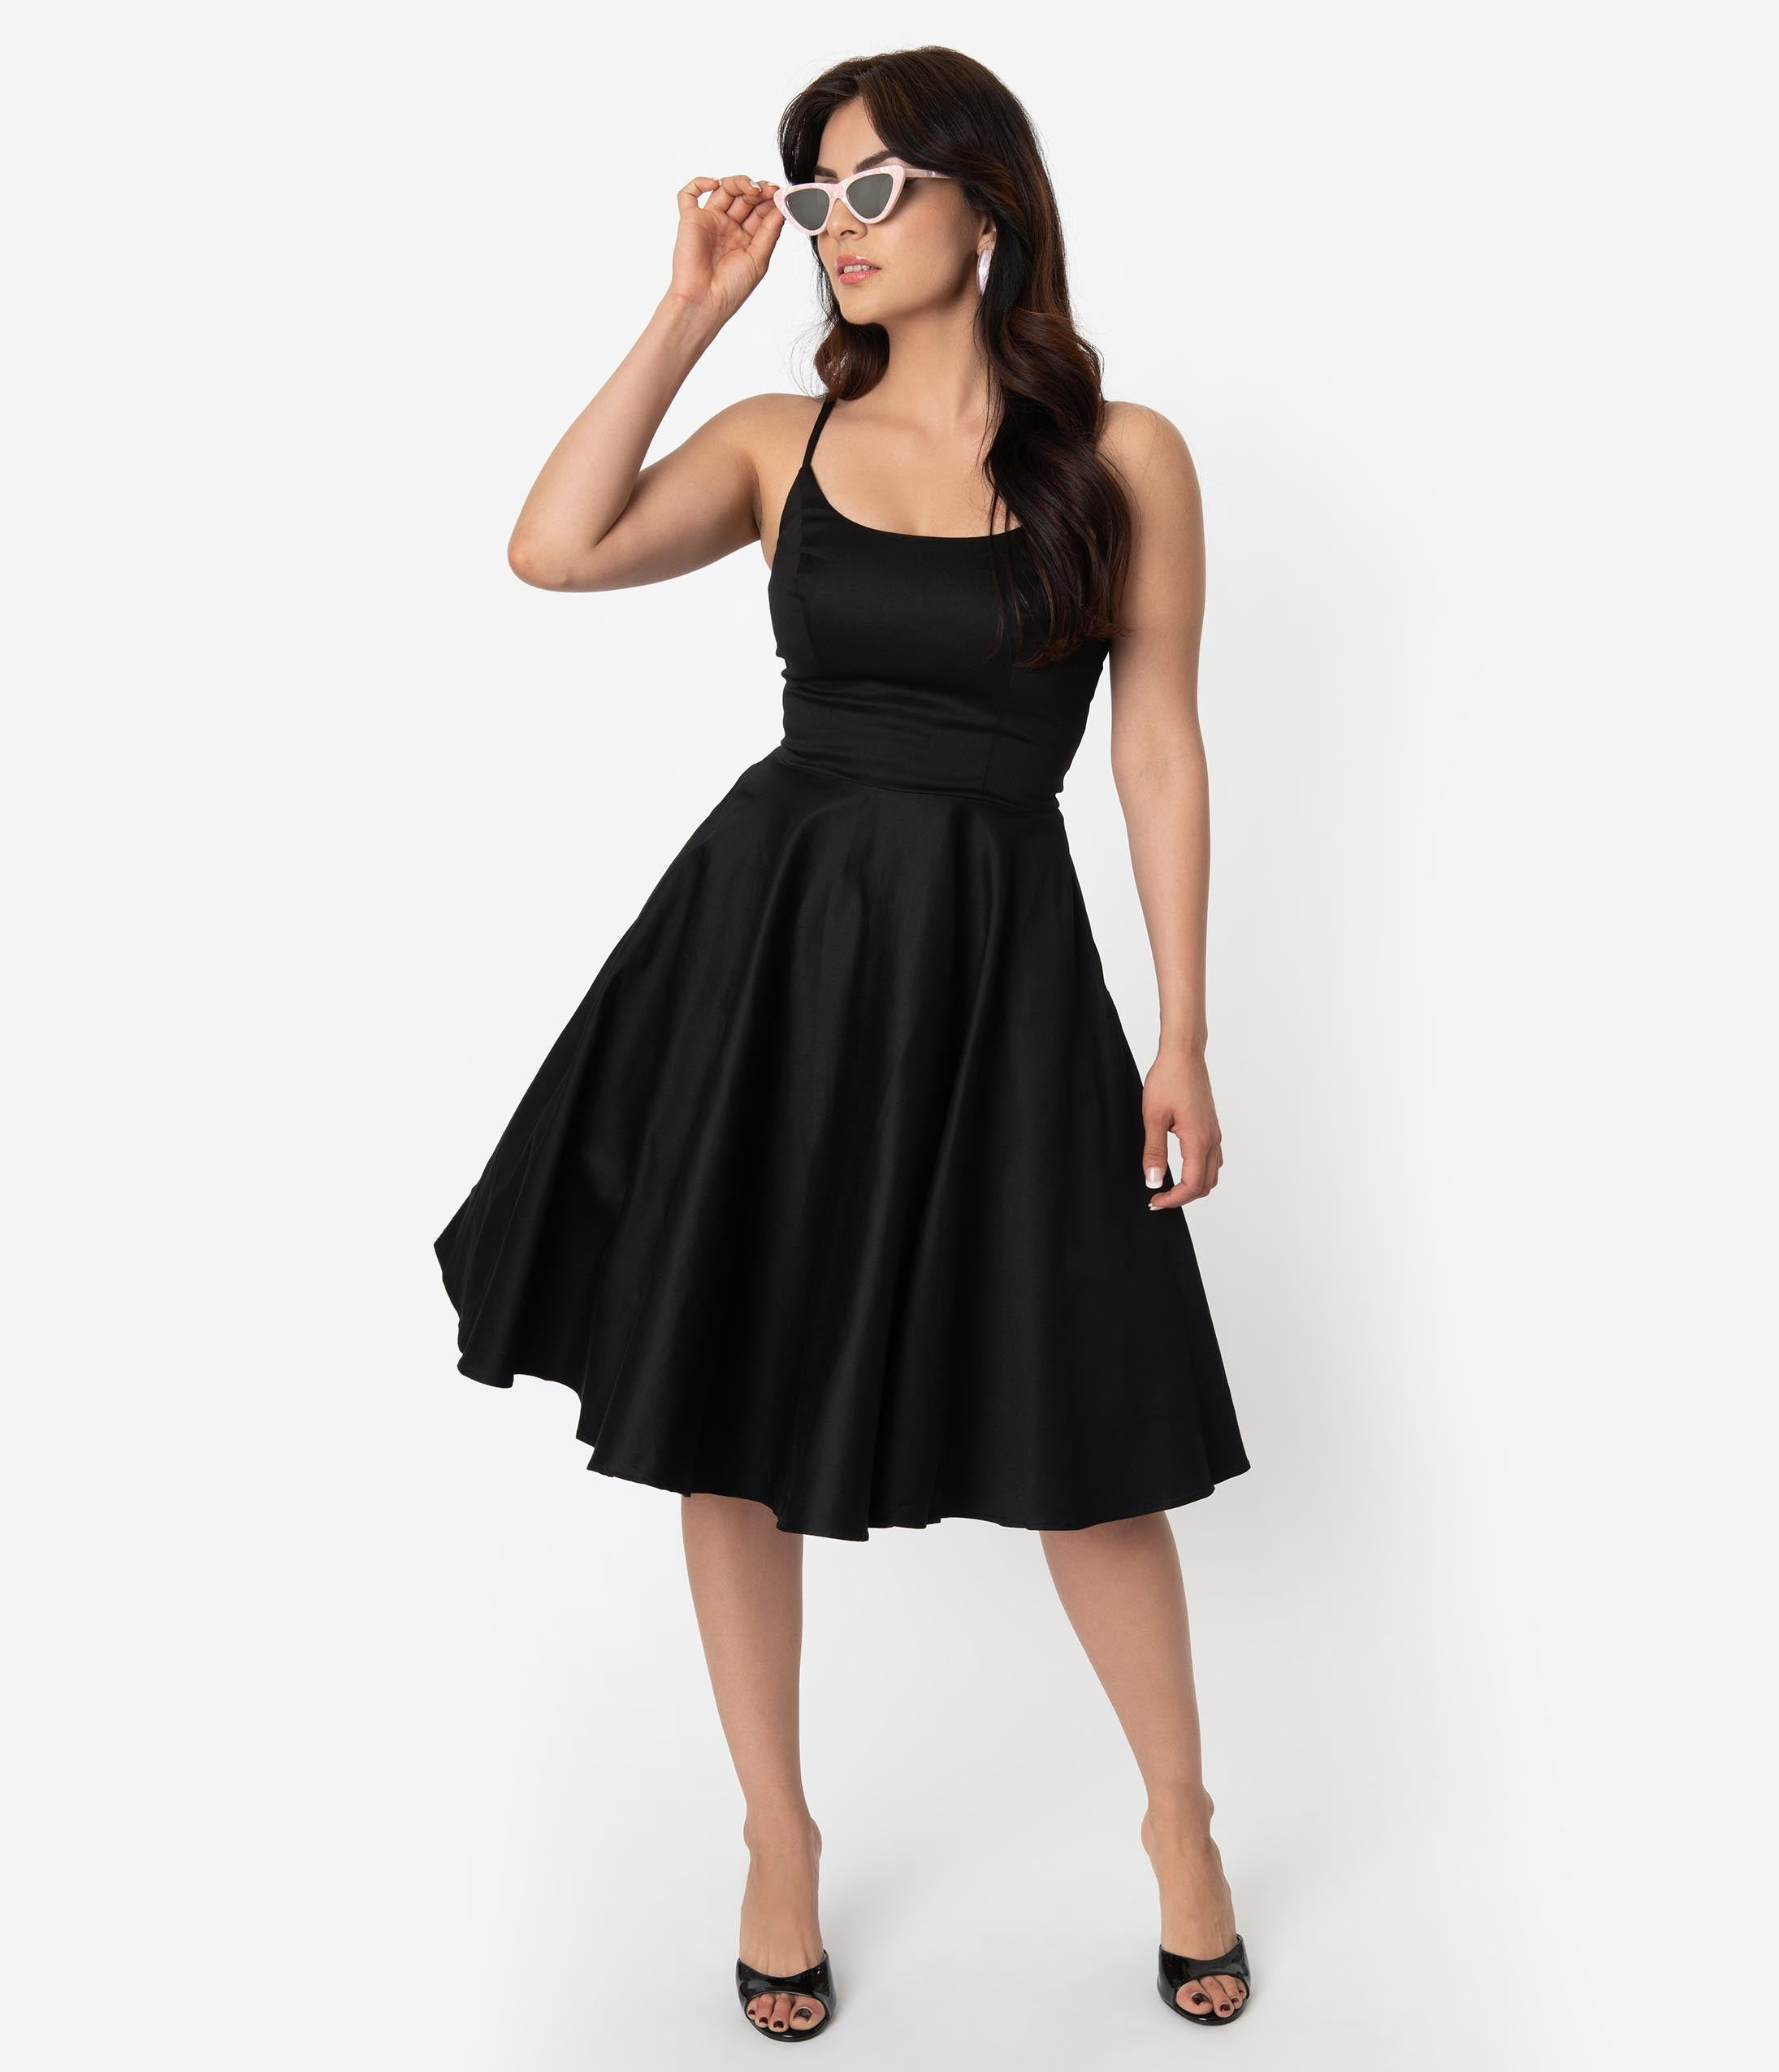 ca0b9f24a676 1950s Cocktail Dresses, Party Dresses 1950S Style Black Sleeveless Cotton  Peggy Swing Dress $88.00 AT